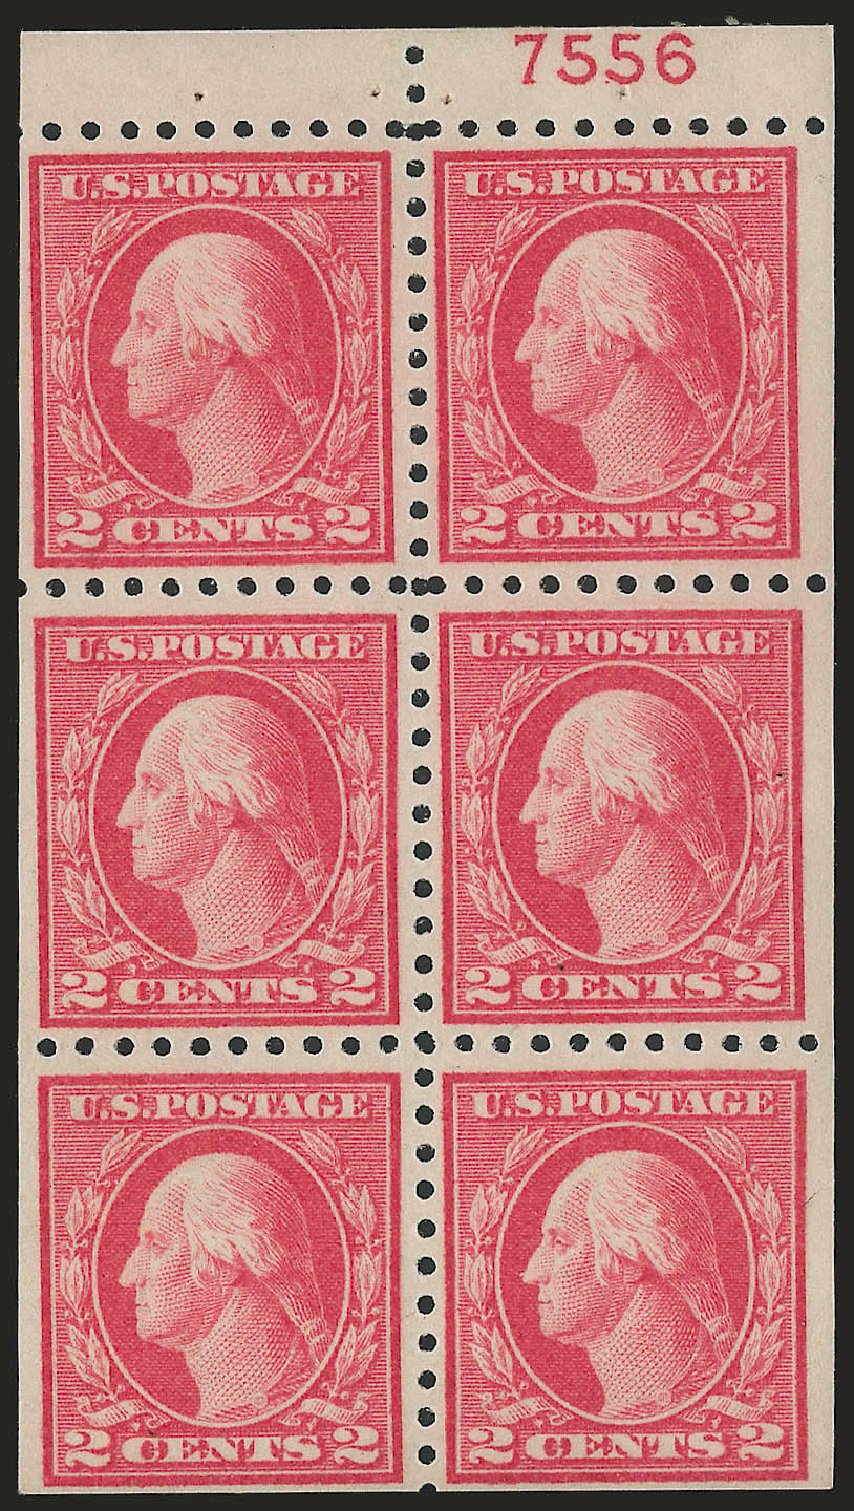 Prices of US Stamps Scott Catalog 463 - 2c 1916 Washington Perf 10. Robert Siegel Auction Galleries, Jun 2010, Sale 991, Lot 1243